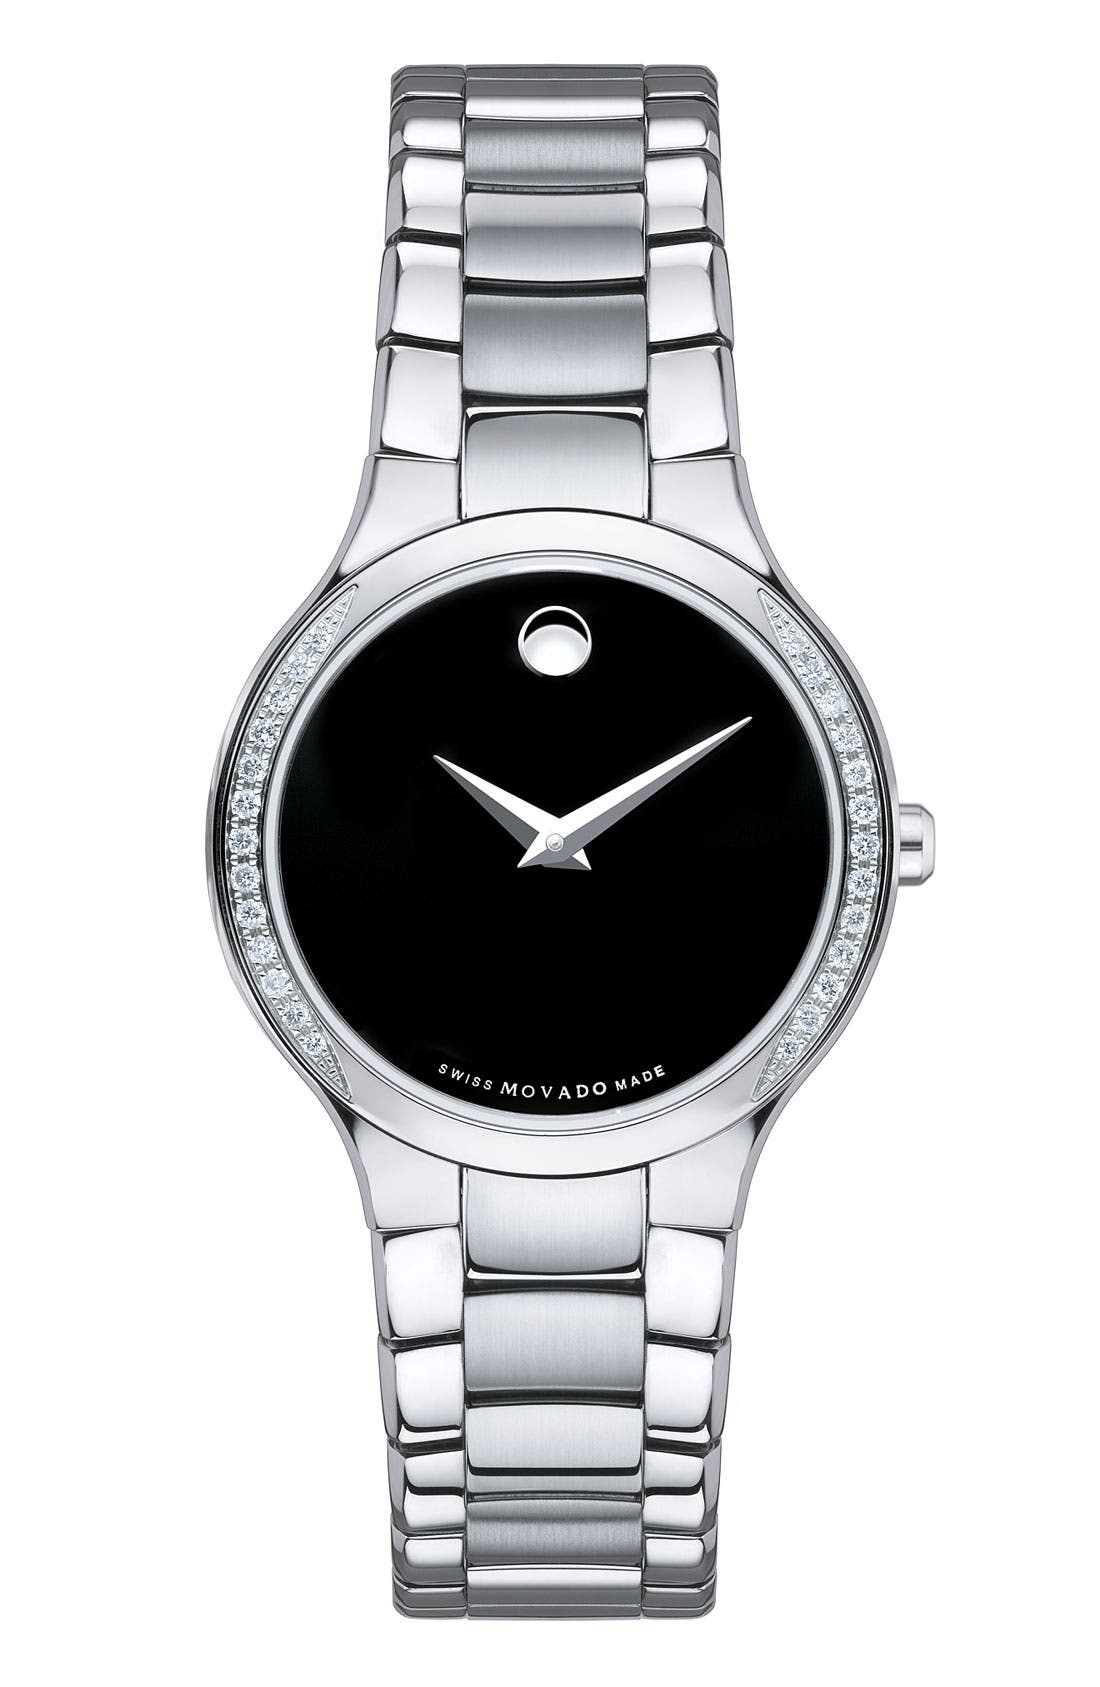 Main Image - Movado 'Serio' Black Dial Diamond Bracelet Watch, 26mm